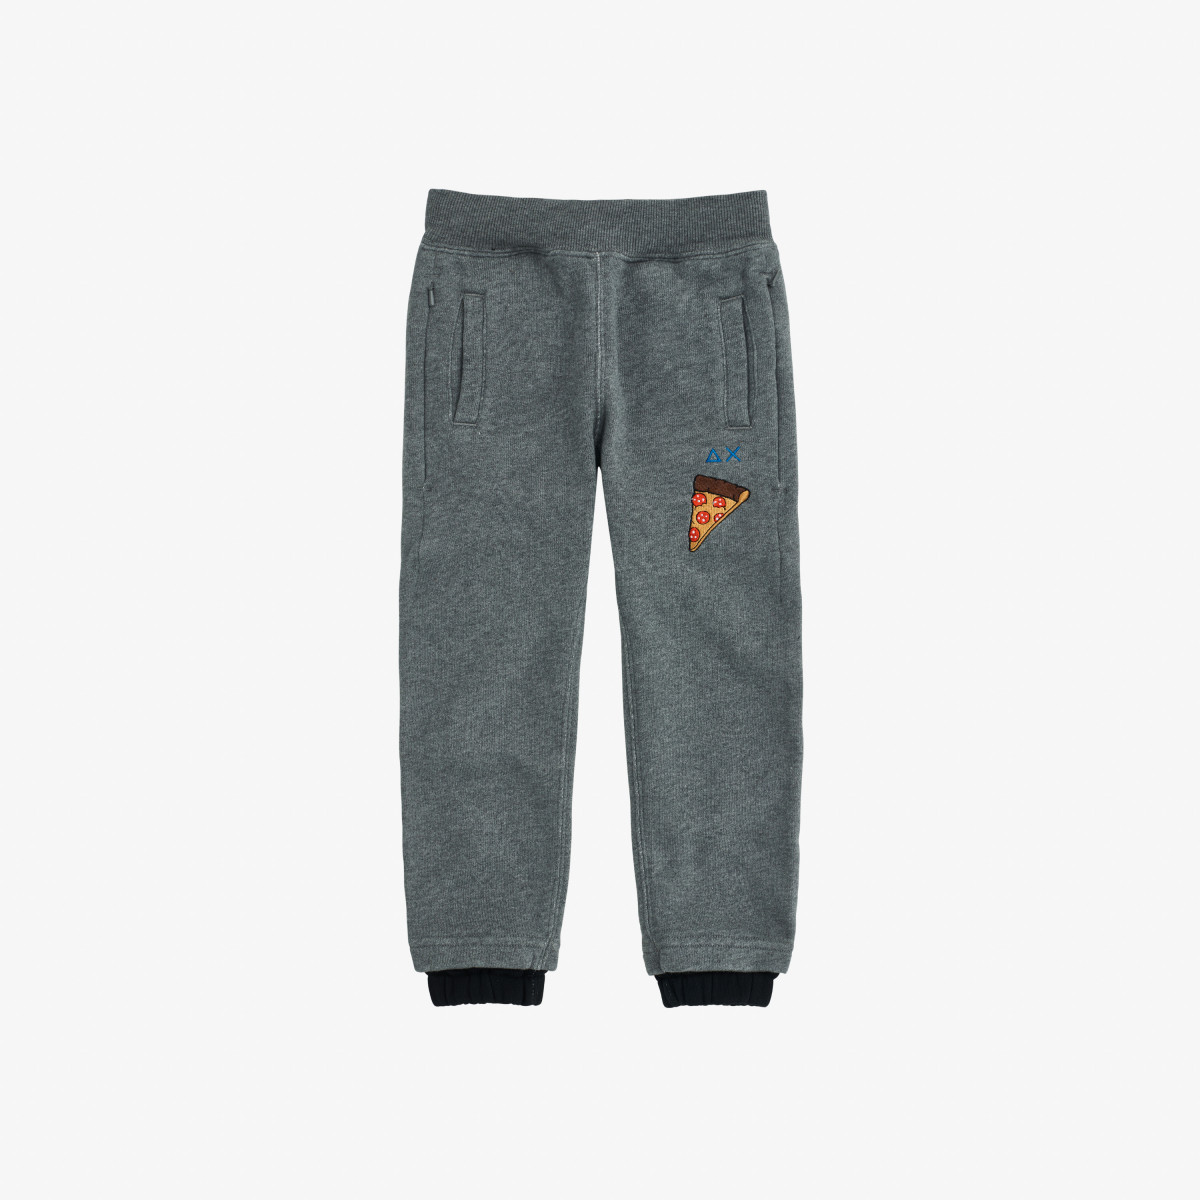 BOY'S PANT LONG COTT.FL MEDIUM GREY